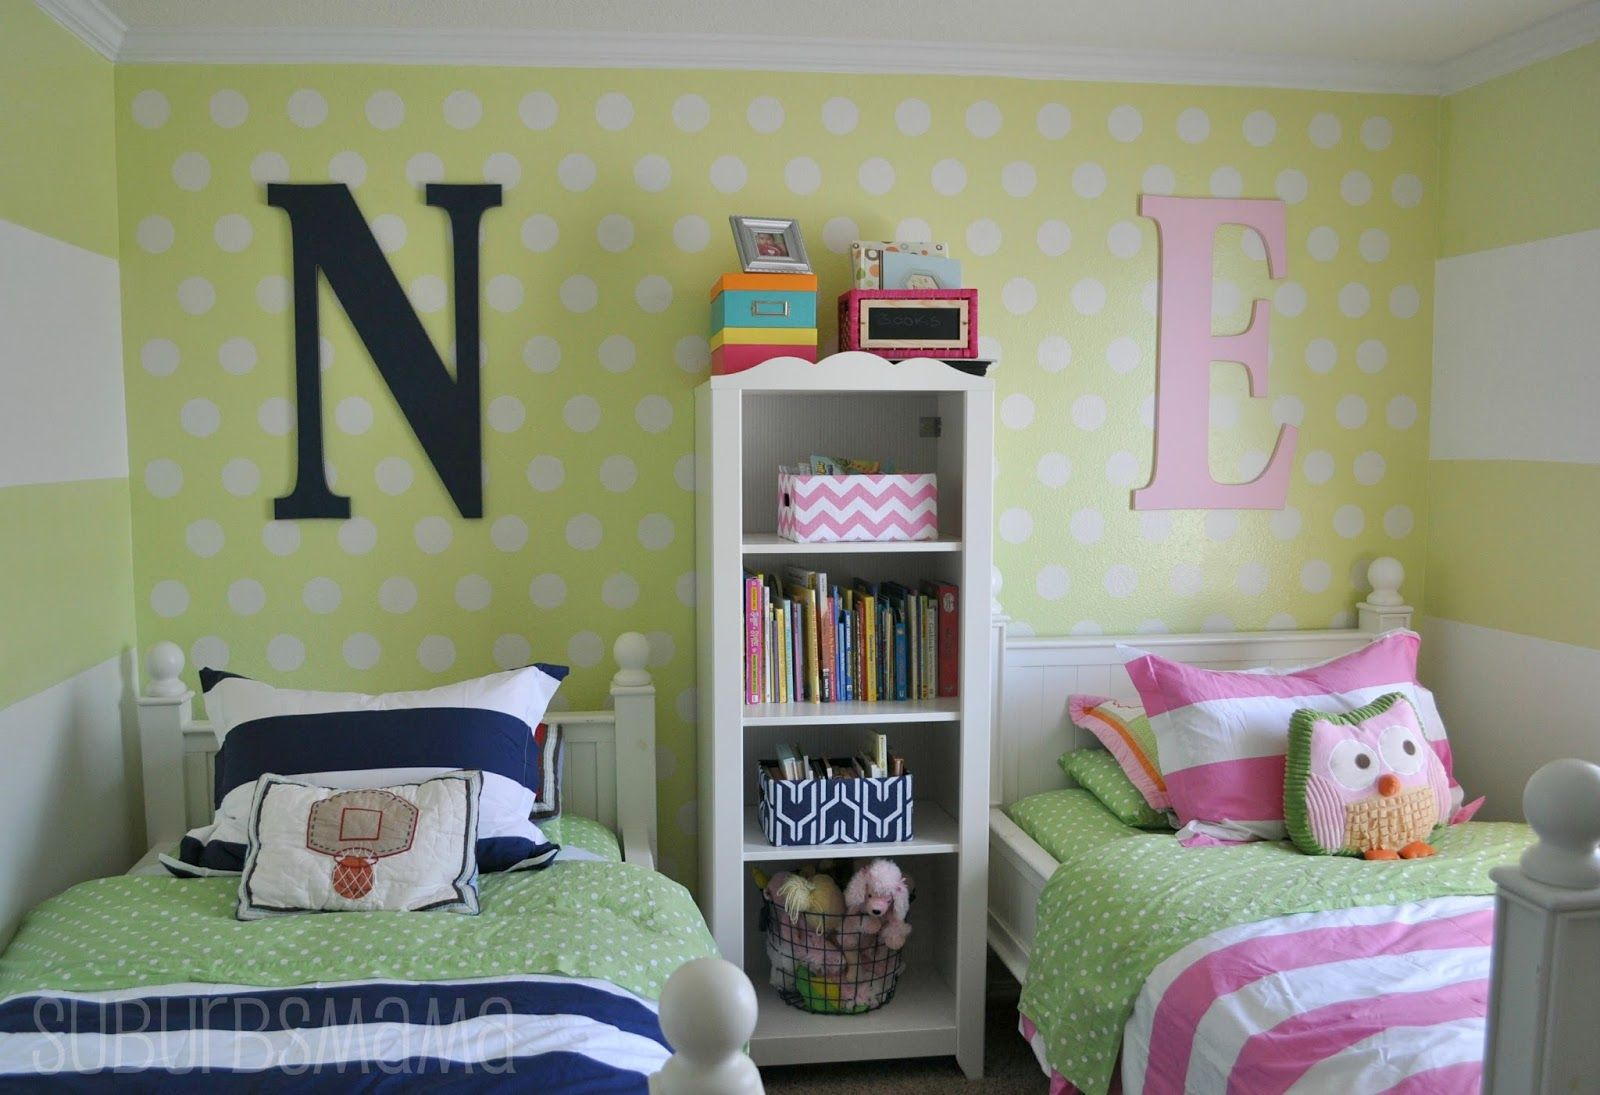 16 Gorgeous Boy Girl Room Ideas : Beautiful Boy And Girl Shared Bedroom  With Two Single Size Beds Navy And Pink Stripes Pillows Blankets Plus  Basketball ... Part 19